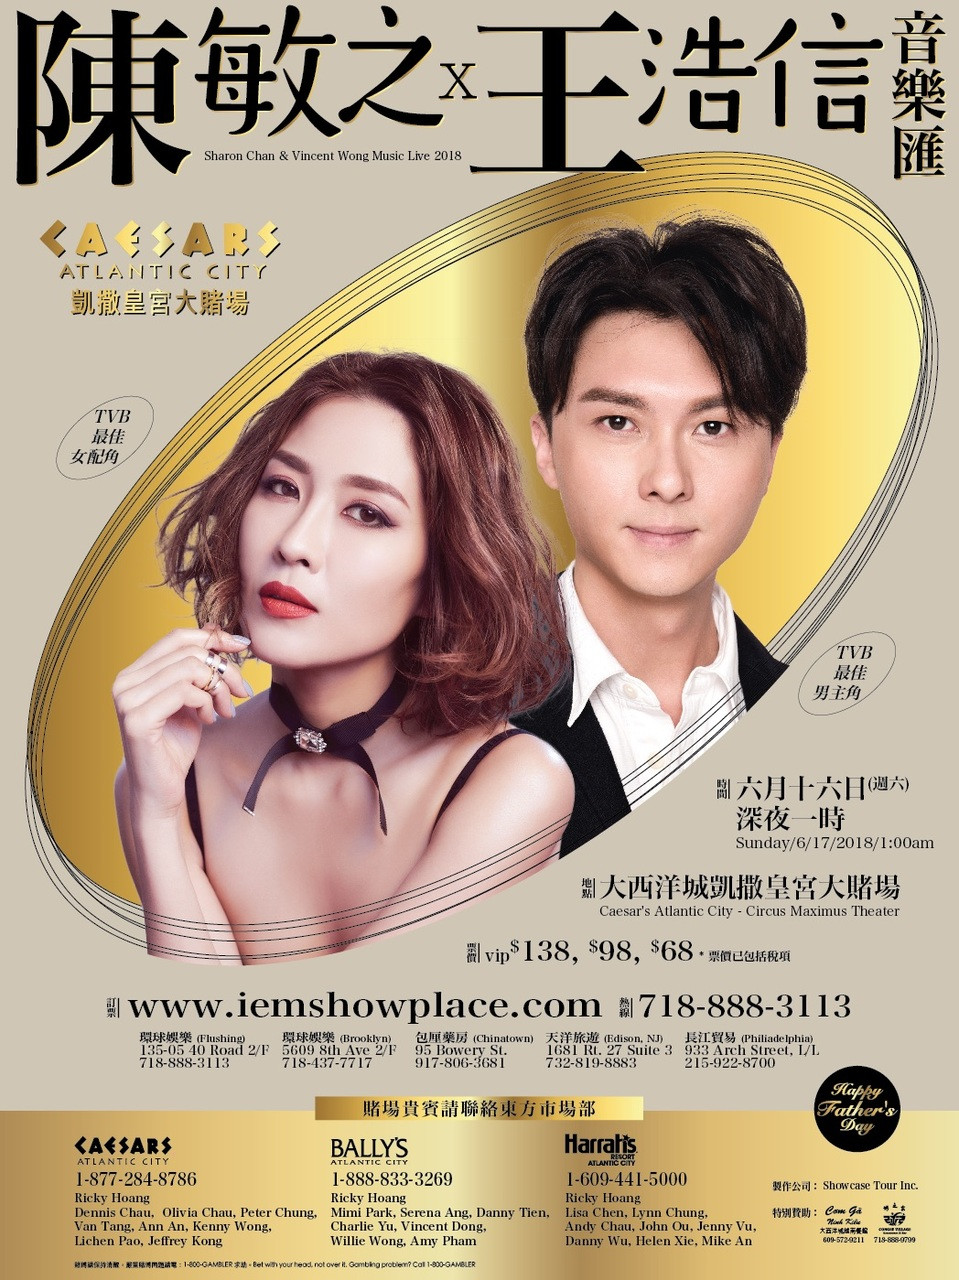 王浩信X陳敏芝音樂匯 Sharon Chan & Vincent Wong Music Live 2018 at Atlantic City